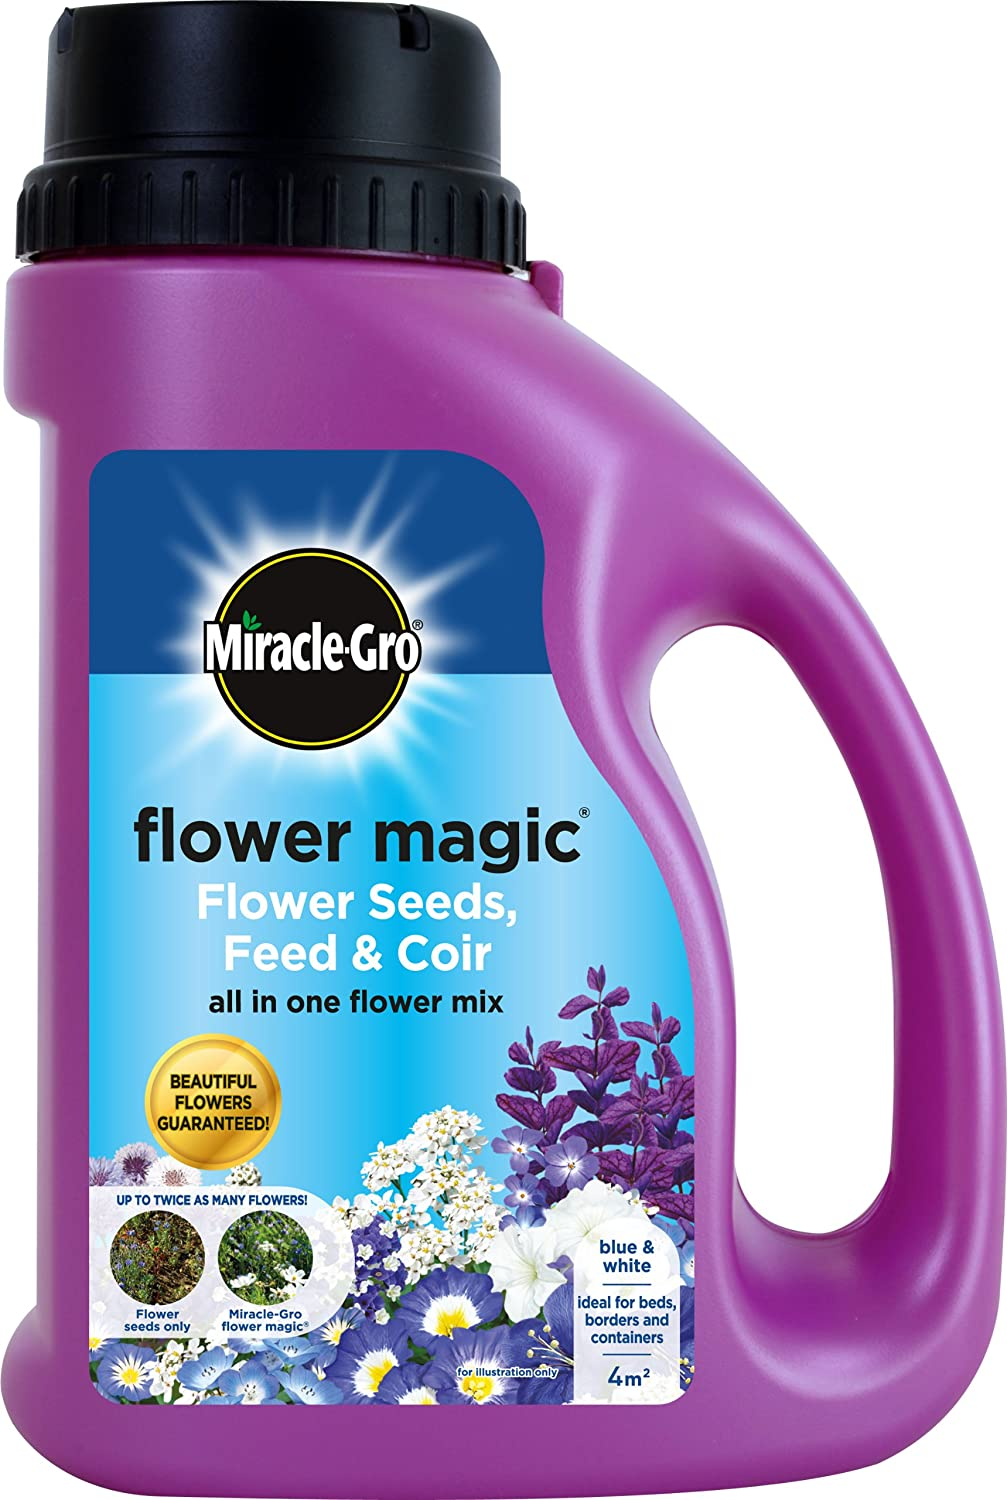 miracle gro kg flower magic flower seeds feed and coir mix miracle gro 1kg flower magic flower seeds feed and coir mix jug blue white amazon co uk garden outdoors